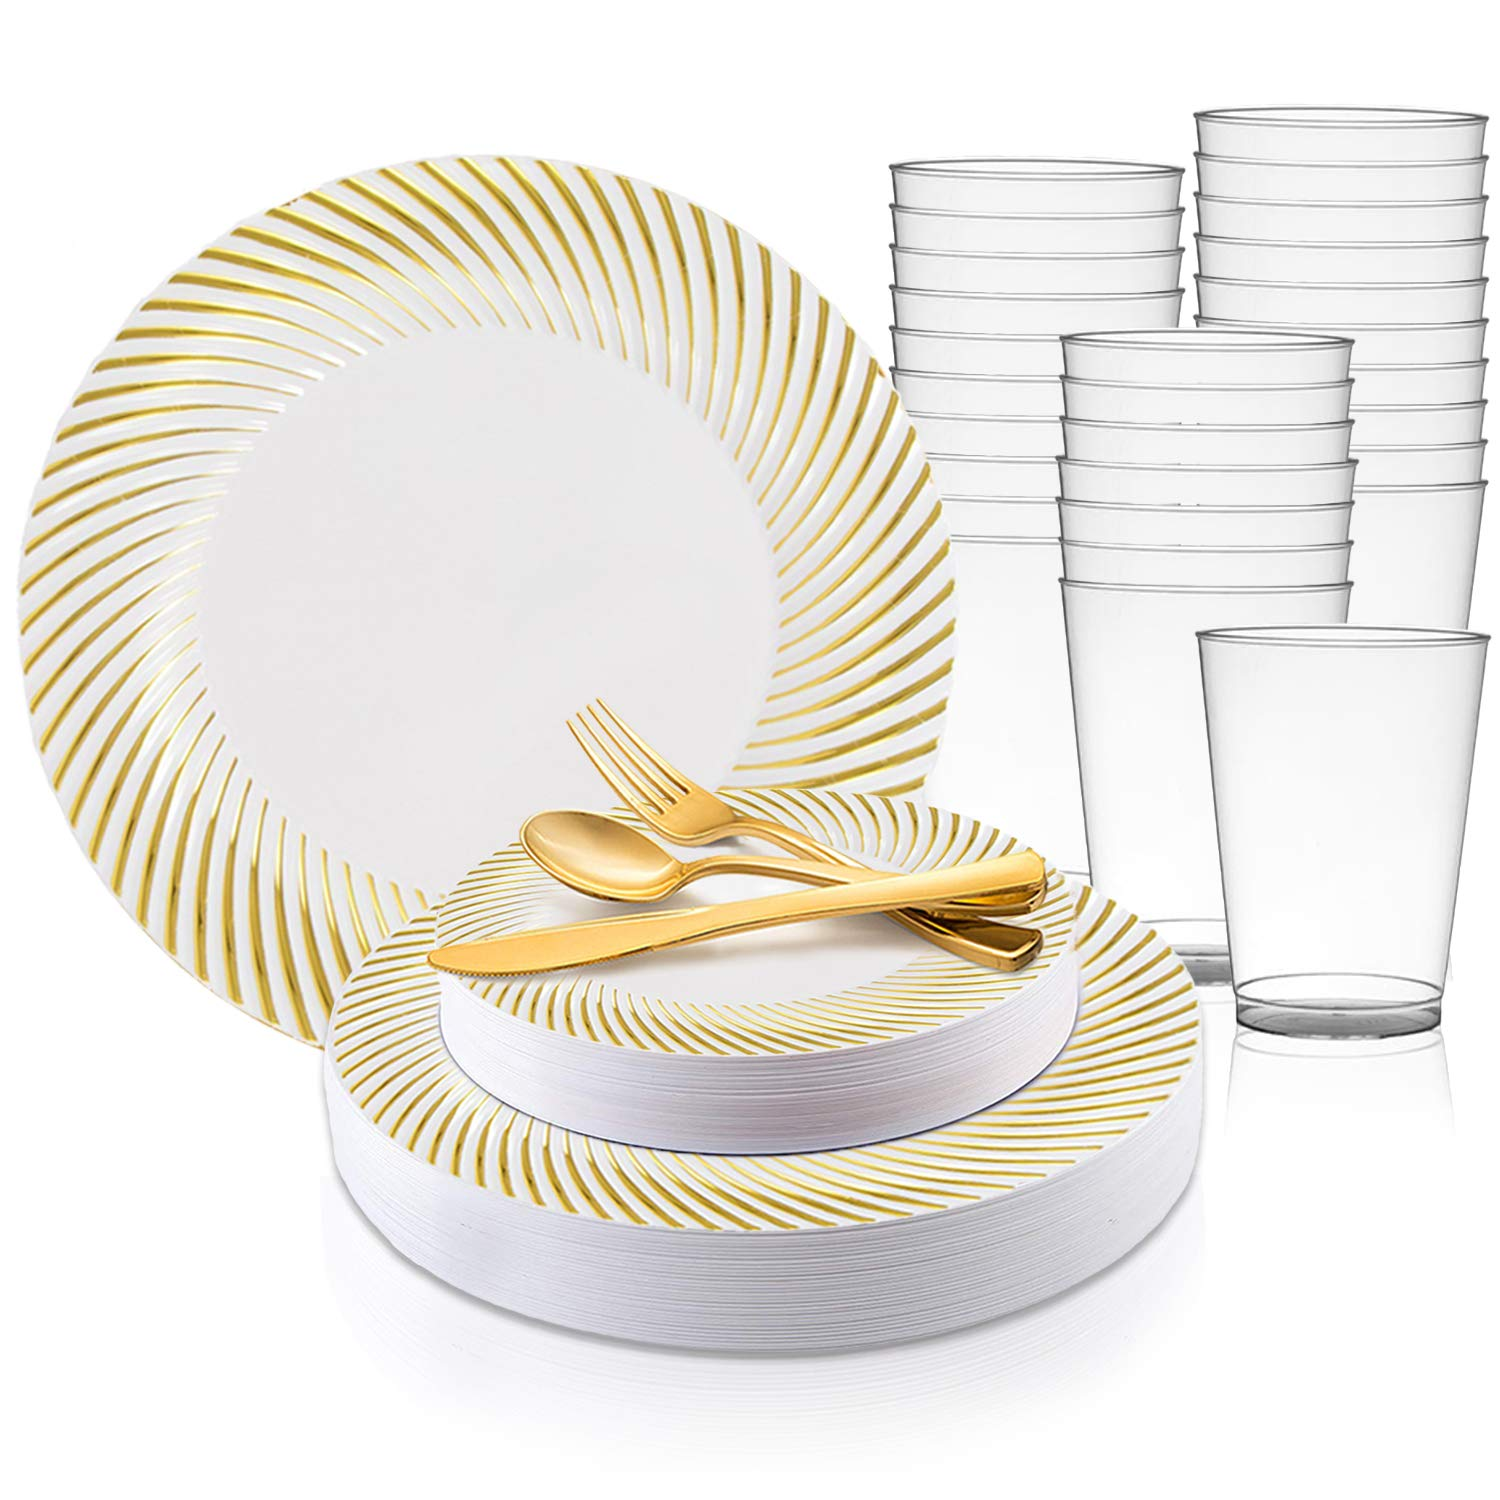 Kaya Collection Swirl Gold Disposable Plastic Dinnerware Party Package Includes Dinner Plates Salad Dessert Plates Gold Cutlery Tumblers 120 Person Package